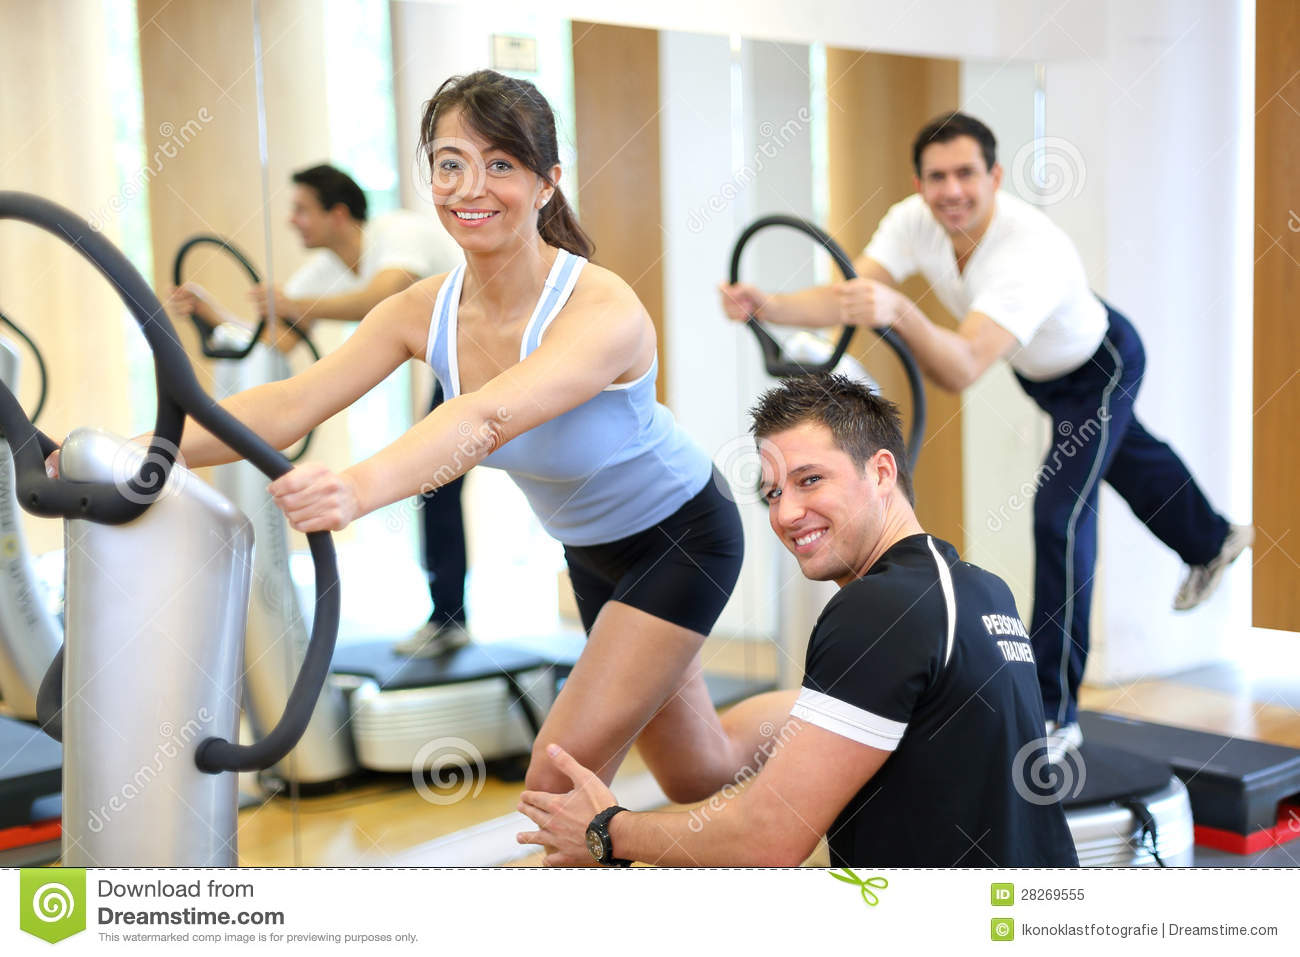 Woman On Vibration Plate Instructed By Her Trainer Stock